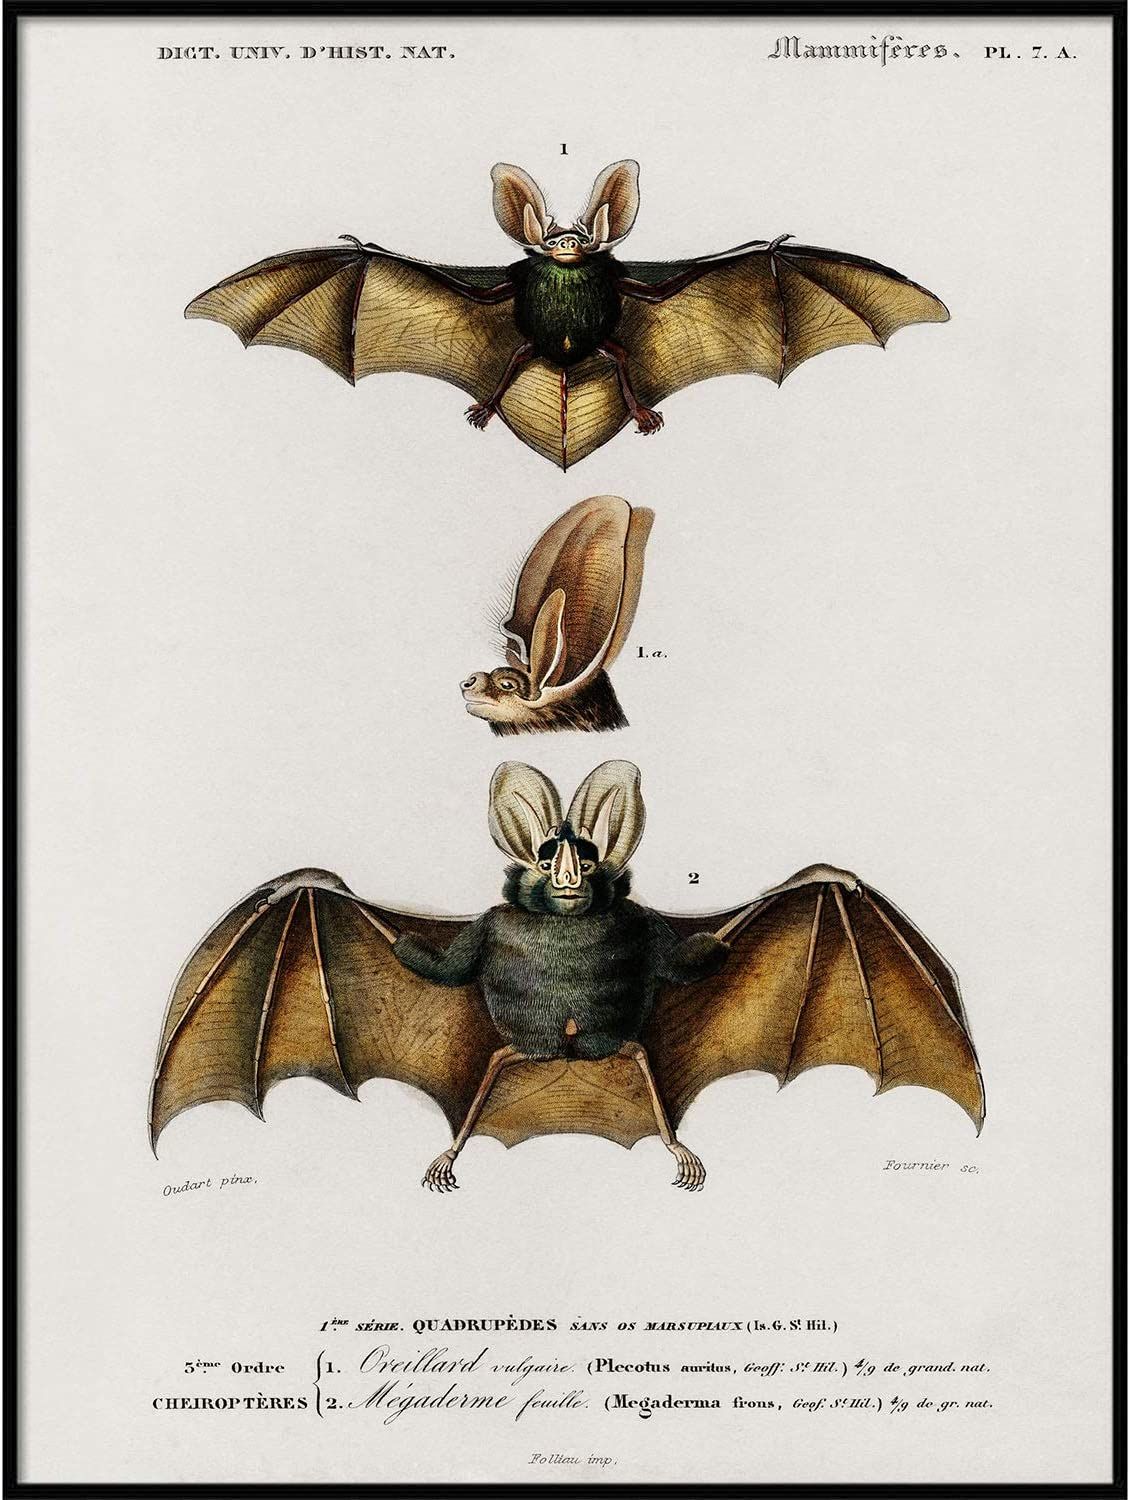 Bat Print, Antique Animal Painting, Vintage Drawing Poster Wall Art Decor, Long-Eared Bat, Zoology zoological, Natural History | C187 8.5x11